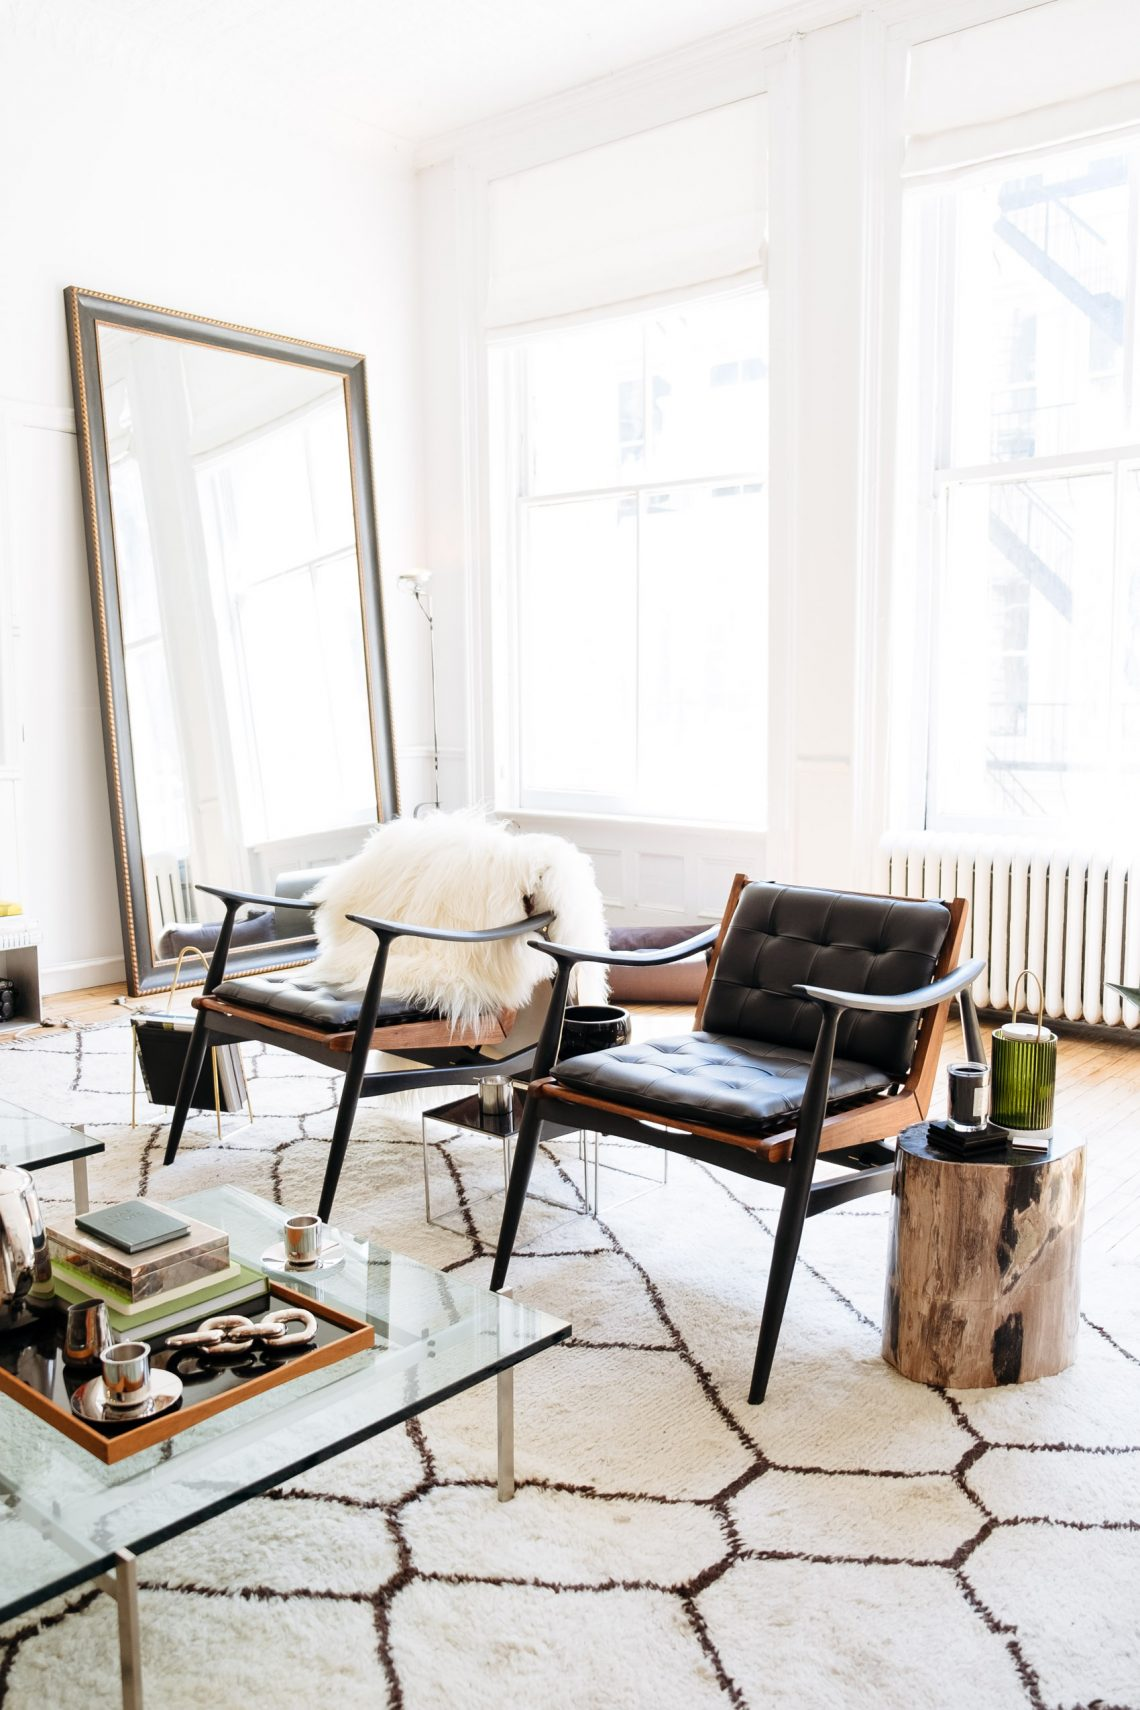 Inspire! The Chic City Loft